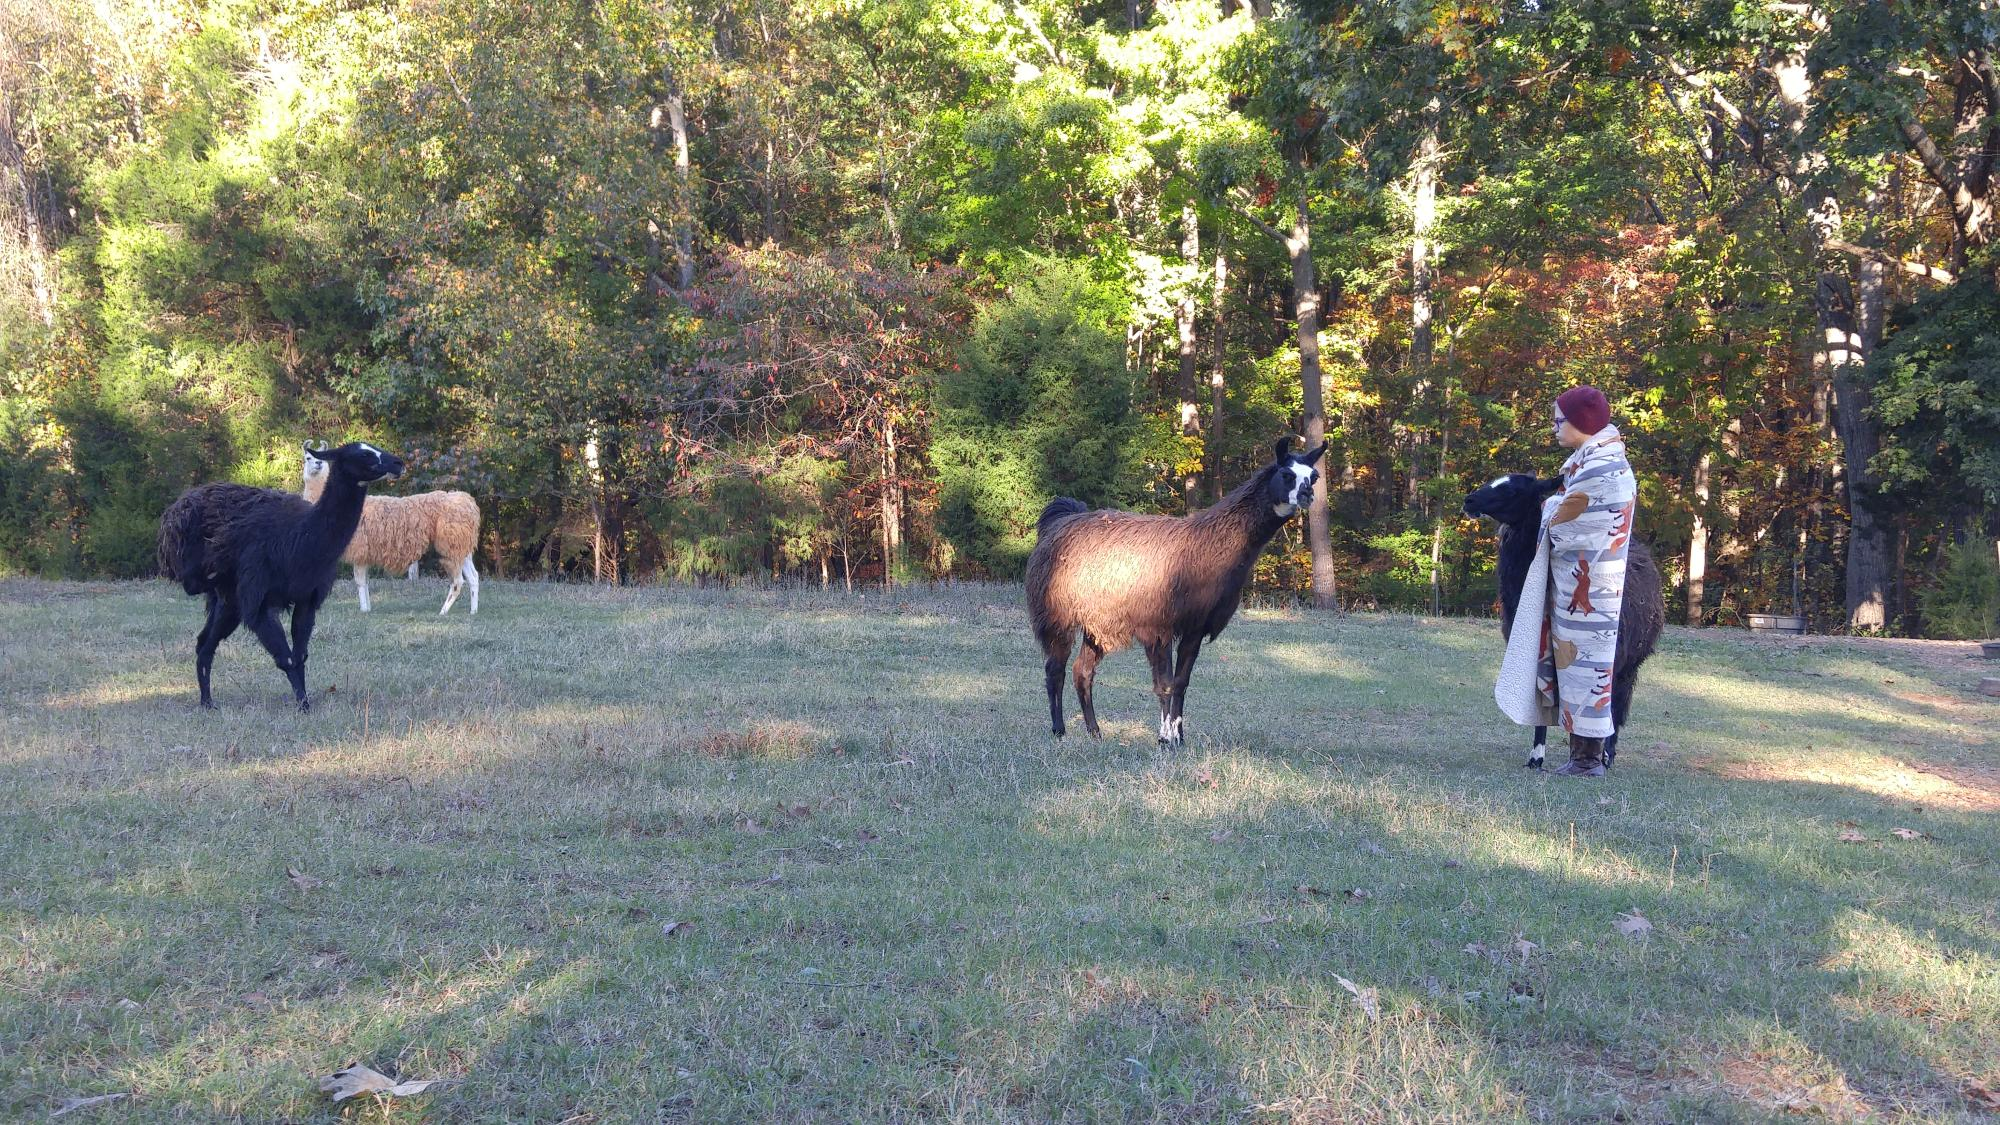 Llama_Assisted_Therapy_-_Willow_Equine_NC.jpg